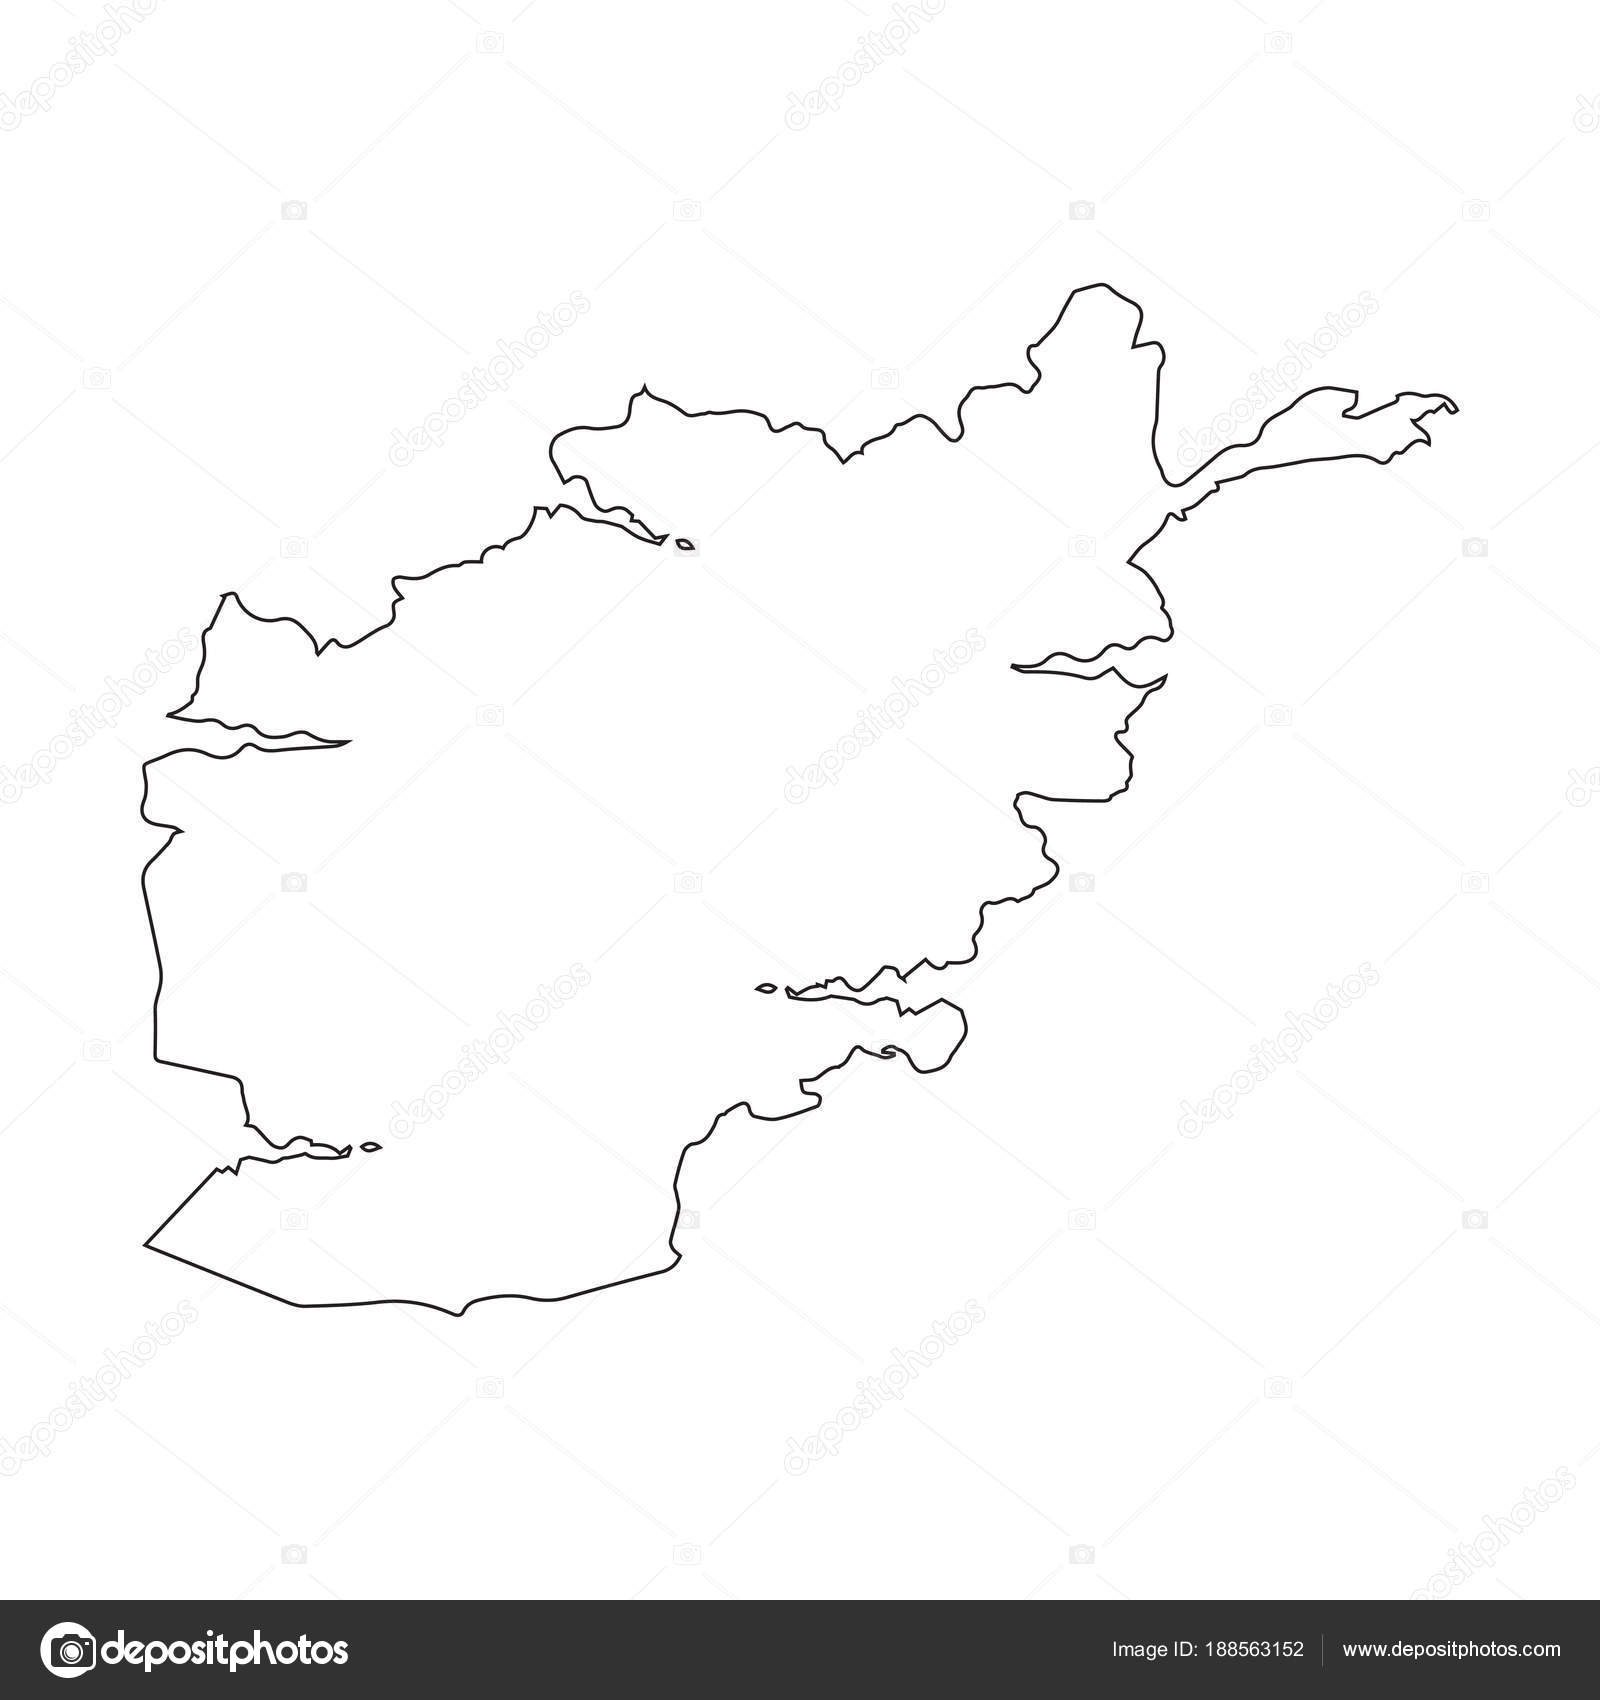 Drawing Map Of Afghanistan on drawing of nicaragua, drawing of guatemala, drawing of colombia, drawing of tradition, drawing of arms race, drawing of indonesia, drawing of liberia, drawing of somalia, drawing of grenada, drawing of western hemisphere, drawing of senegal, drawing of ecuador, drawing of bahamas, drawing of honduras, drawing of greenland, drawing of deccan plateau, drawing of bulgaria, drawing of marshall islands, drawing of martinique, drawing of belgium,